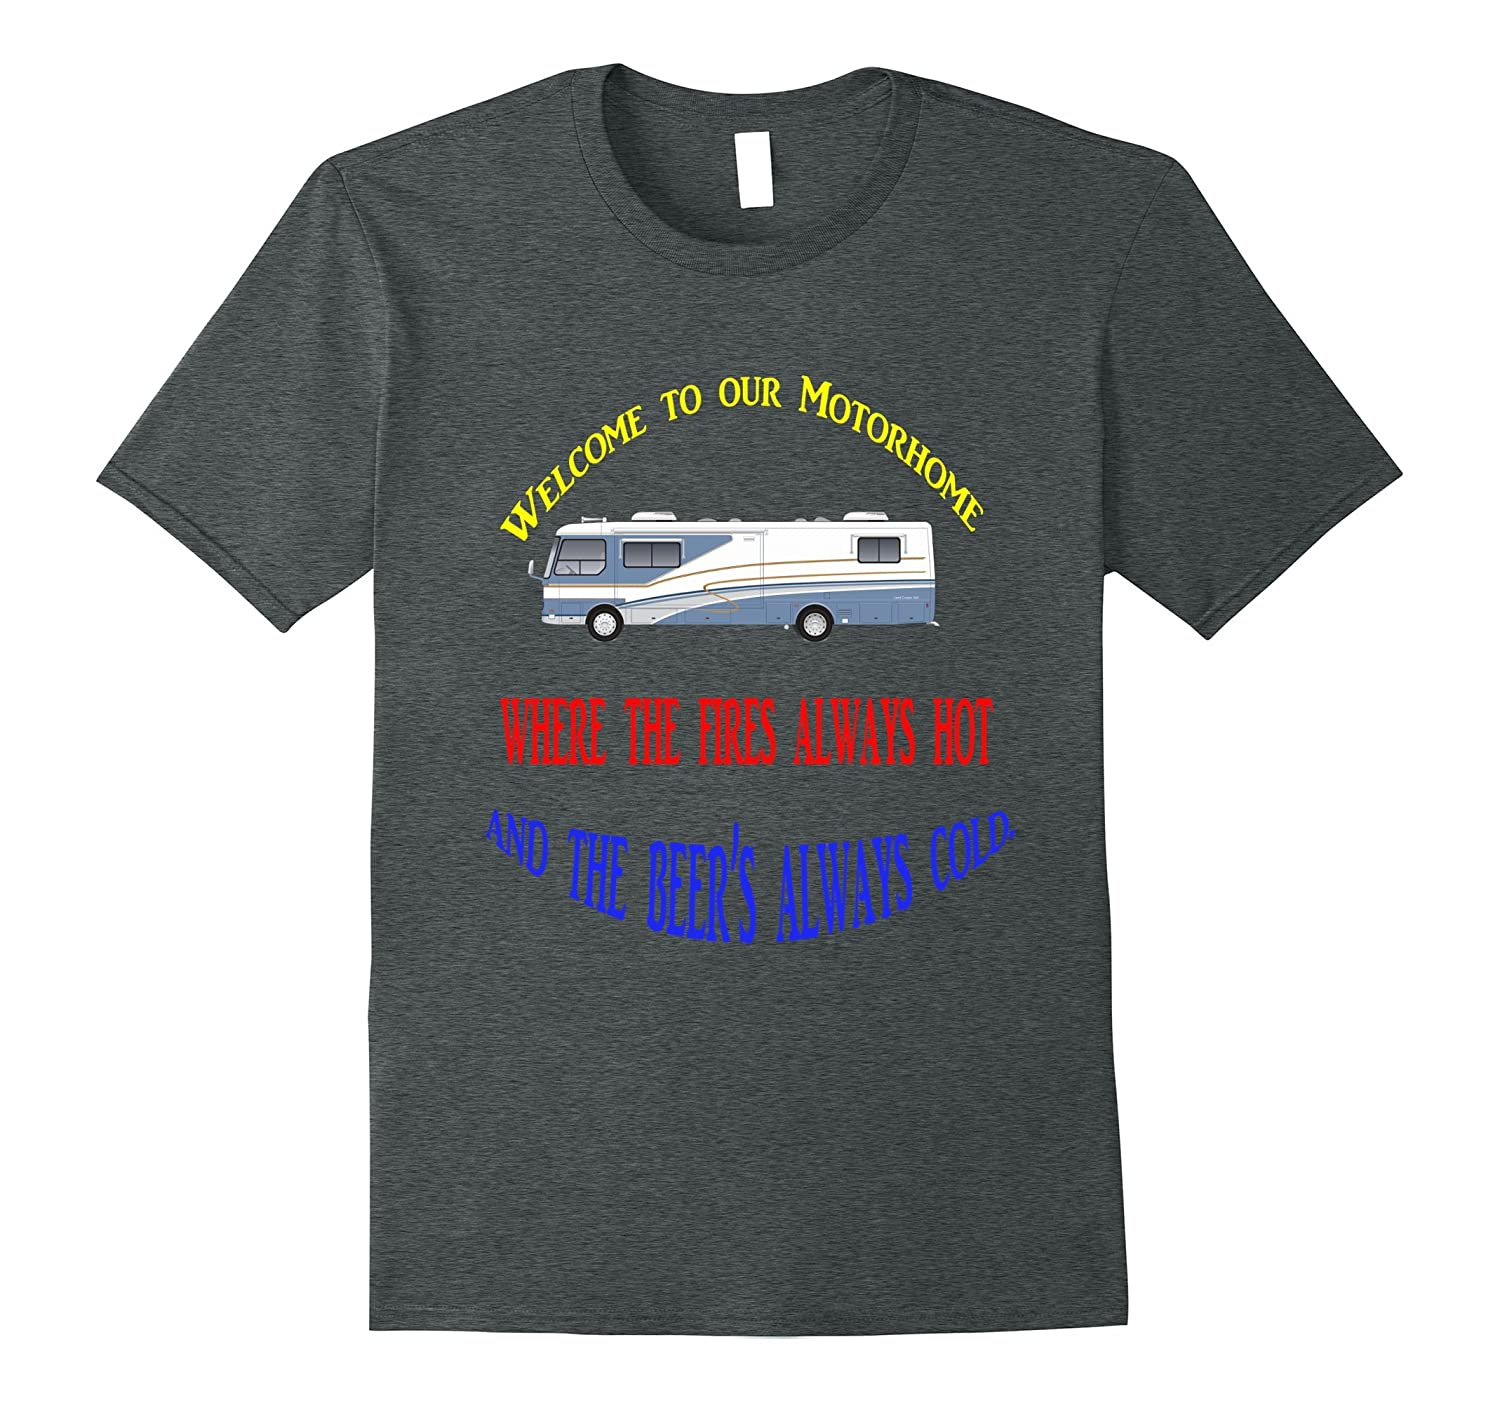 Camping Tee Shirt Welcome To Our Motorhome T-Shirt Gift-CD